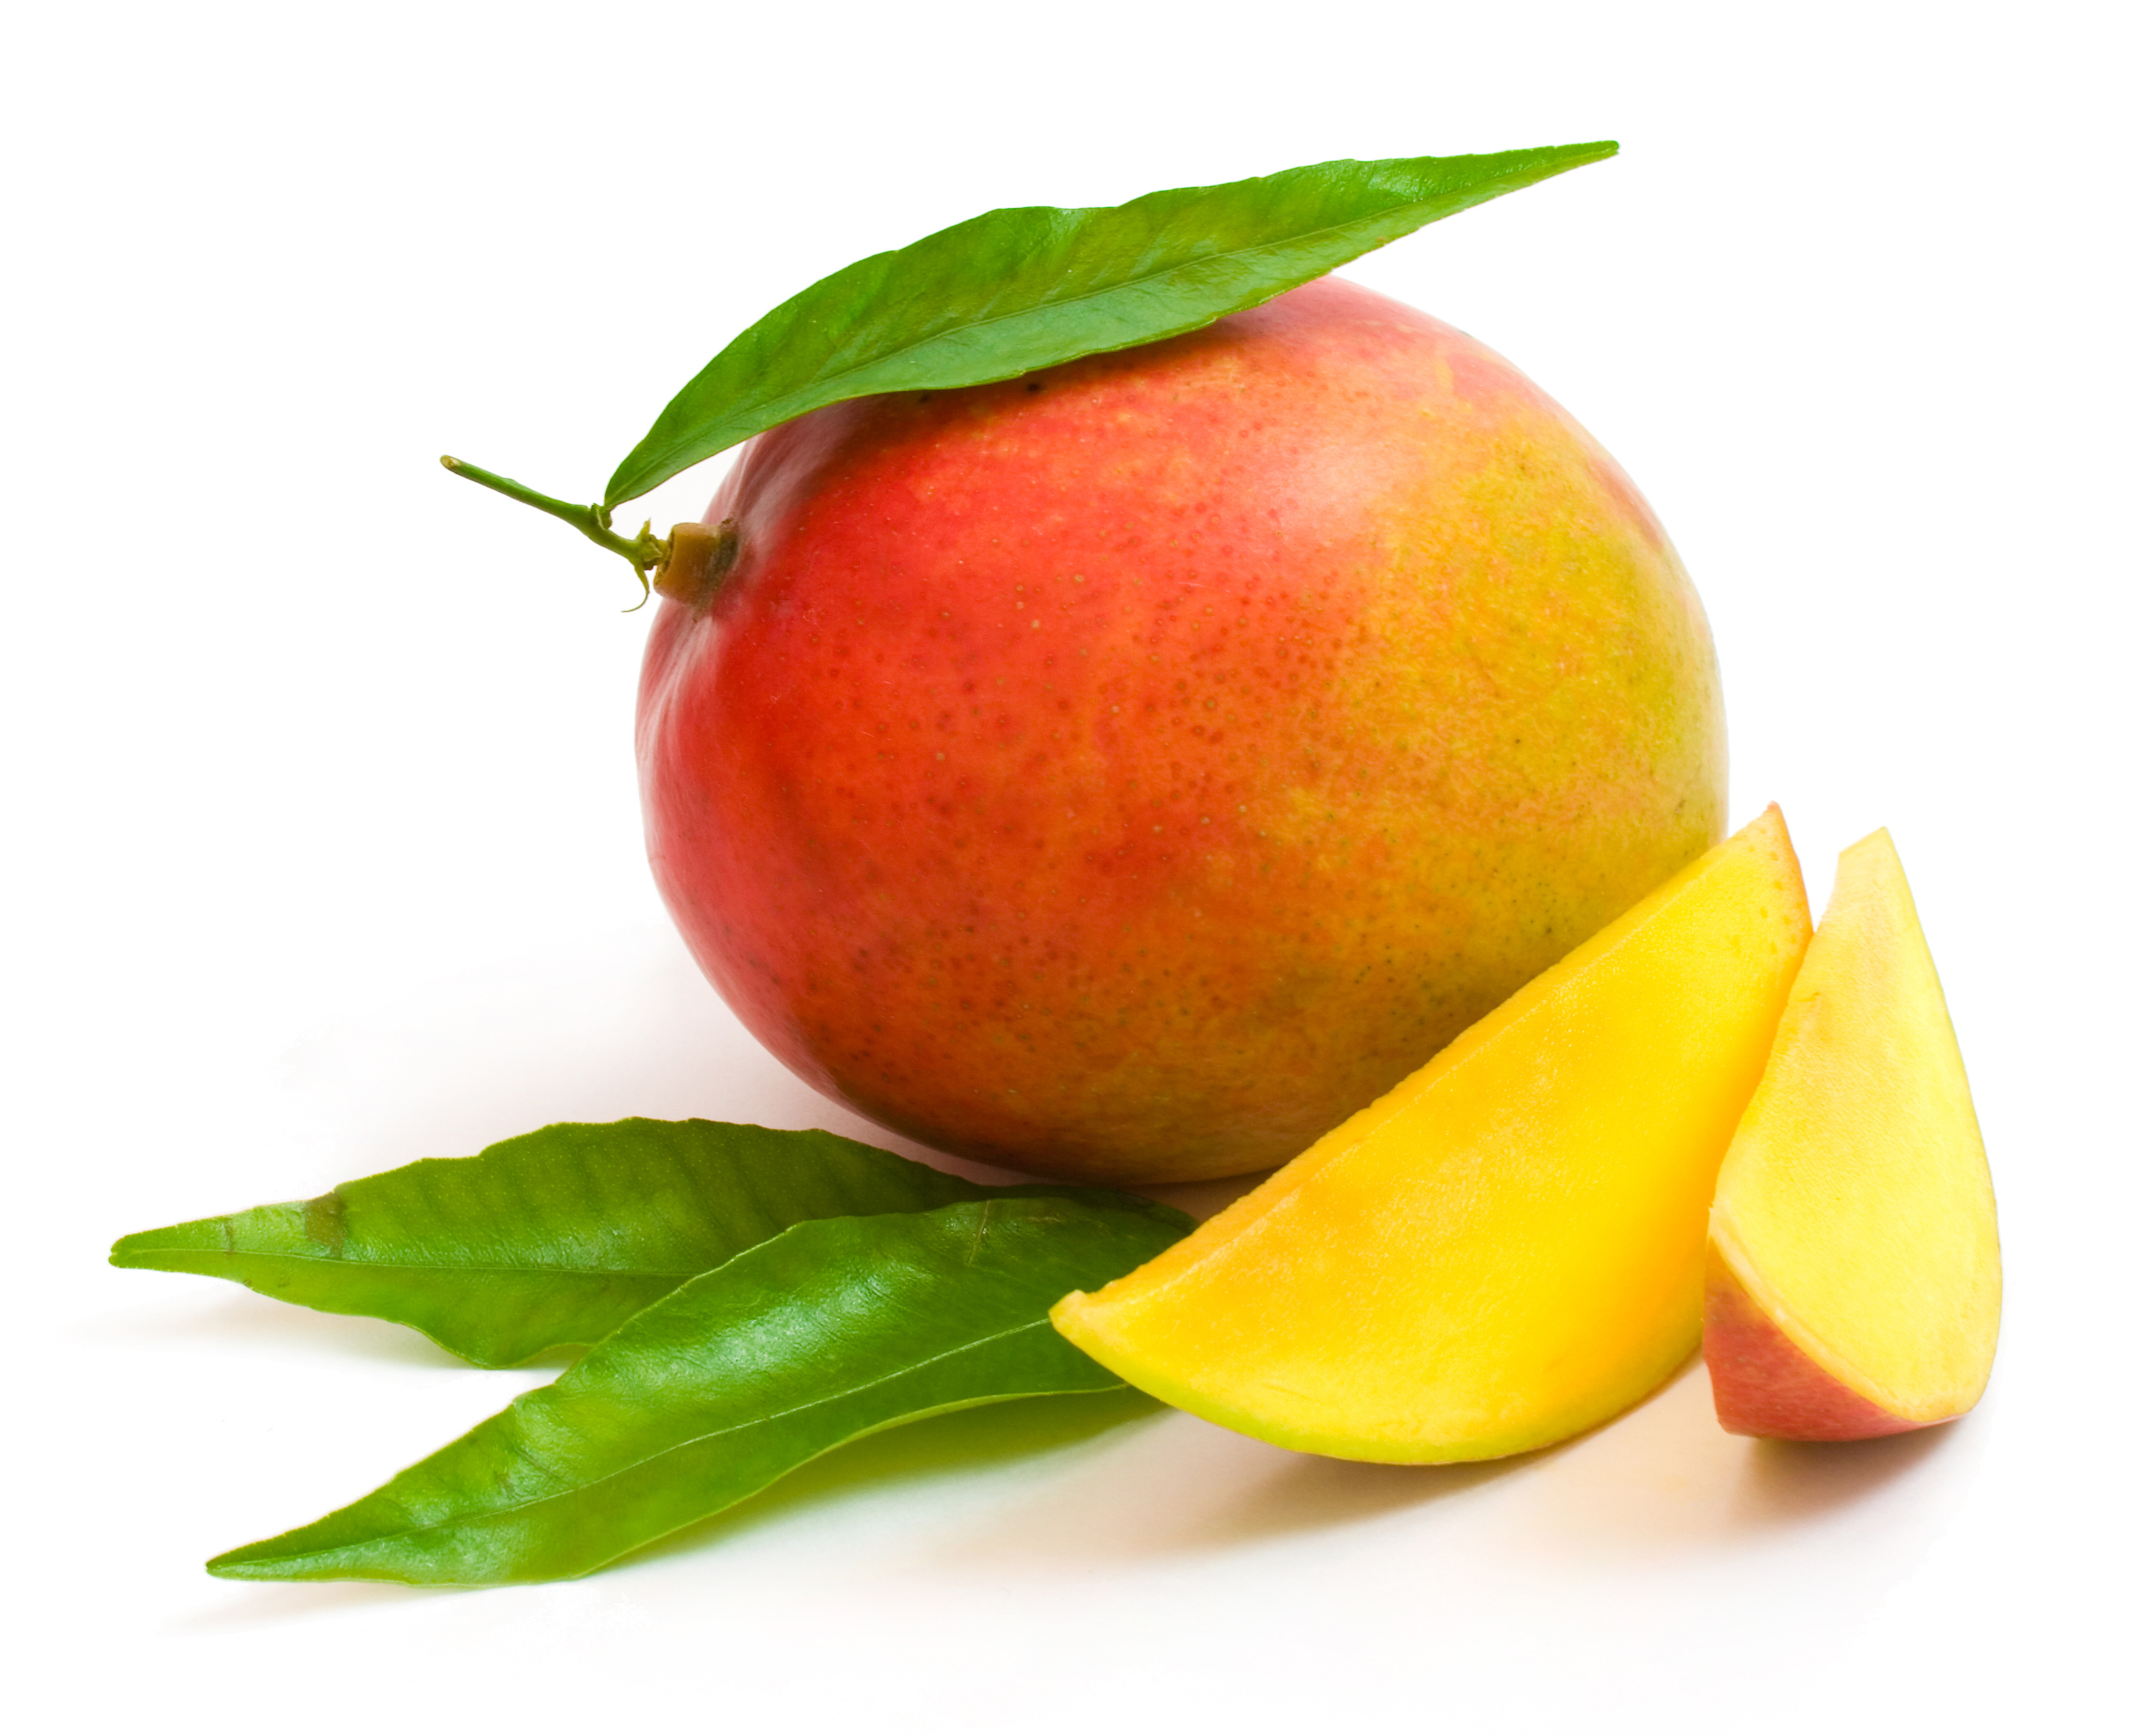 Ripe Mango with Green Leaves 106.41 Kb